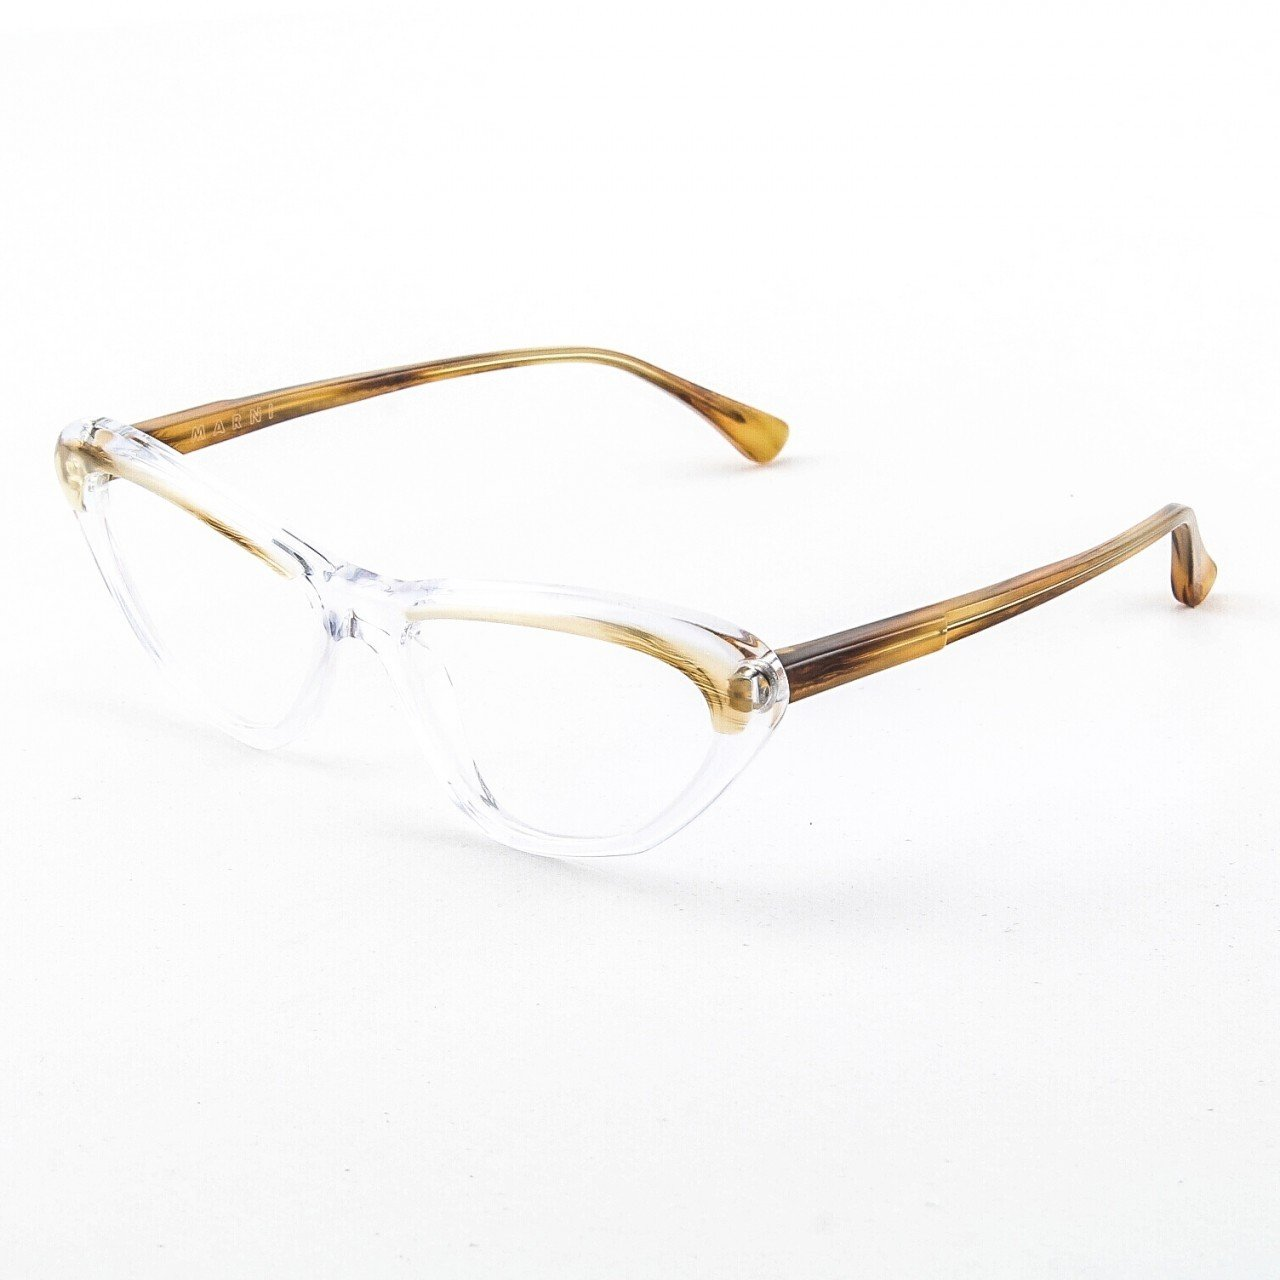 Marni MA675S Eyeglasses Col. 09 Crystal Clear and Tortoise Frame with Clear Lenses